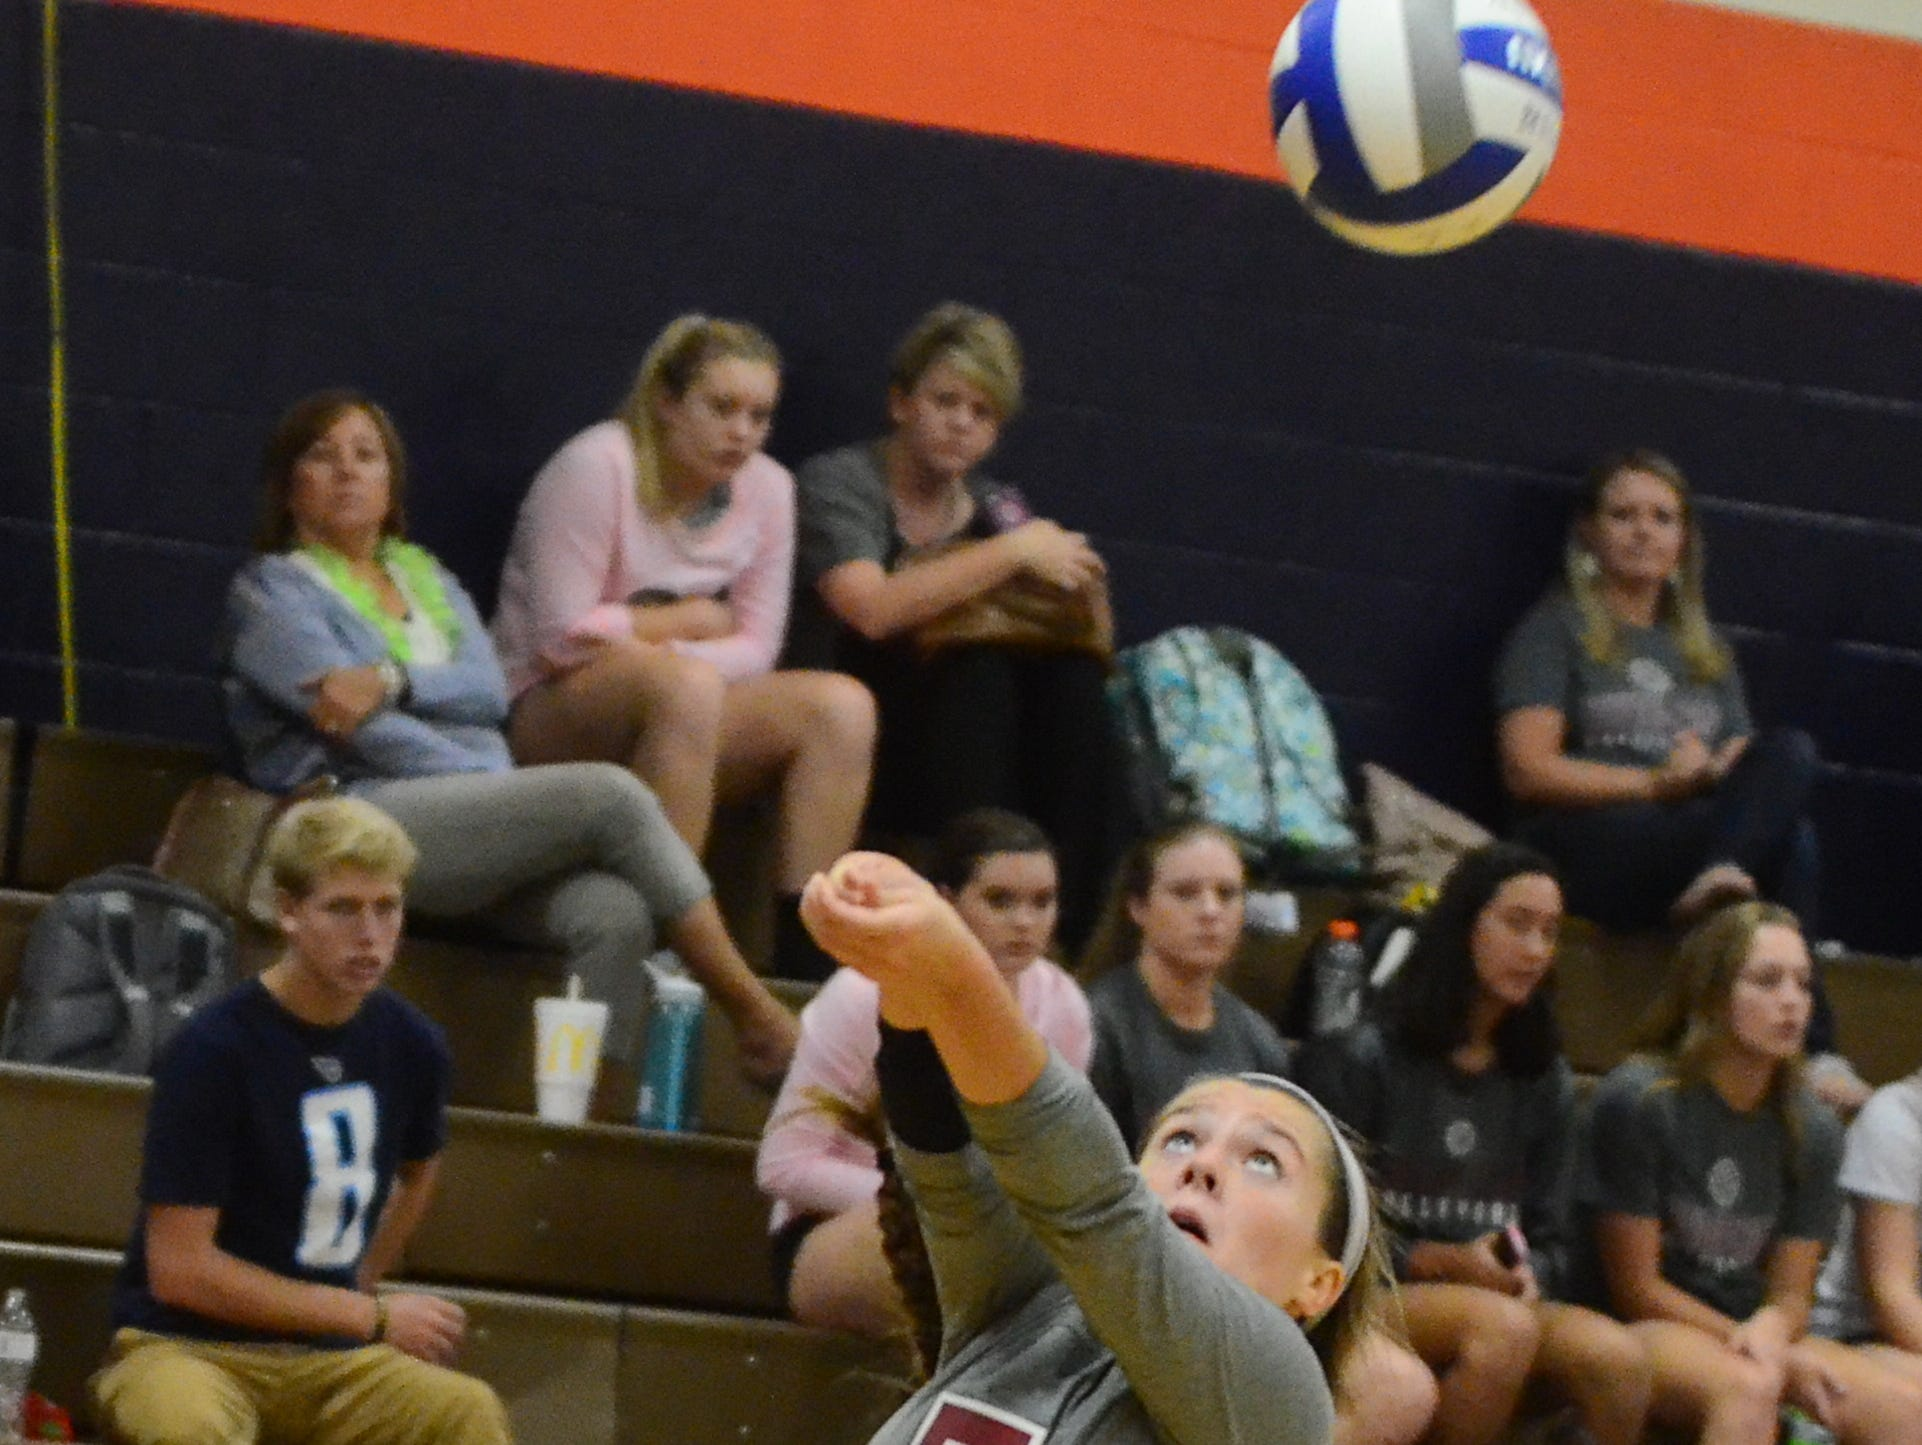 Station Camp senior libero Christina Stacy bumps a pass during Monday's match at Beech. The Lady Bison won in five sets.